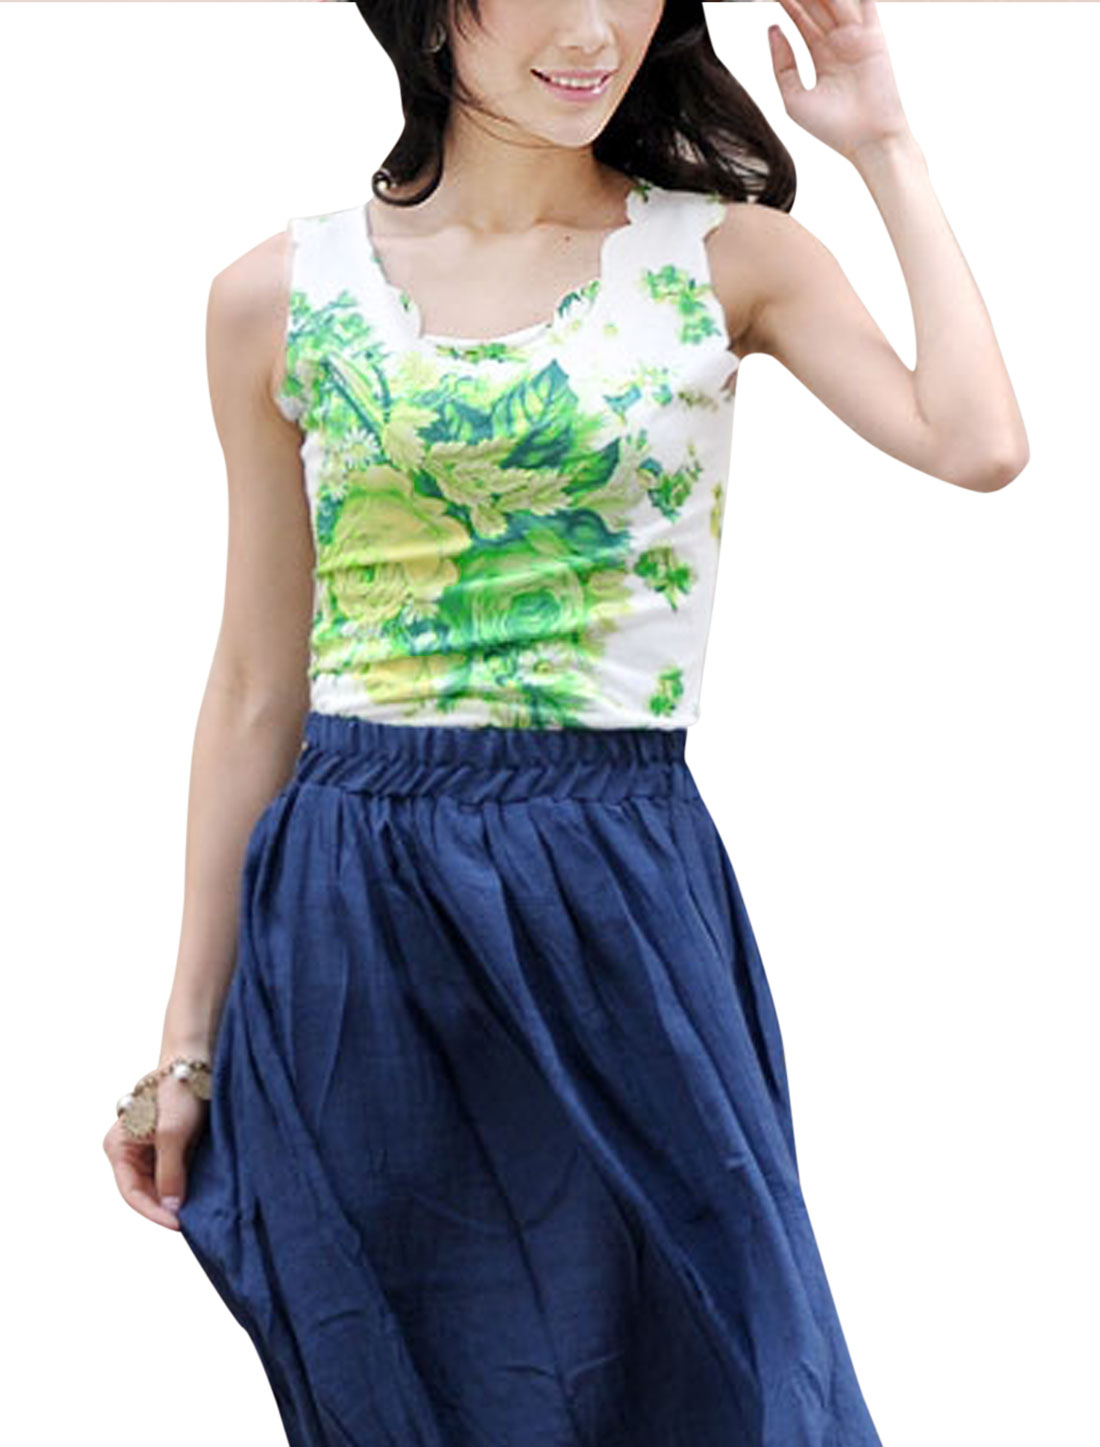 Women Floral Prints Sleeveless Scalloped Trim Elegant Tank Top Green White XS